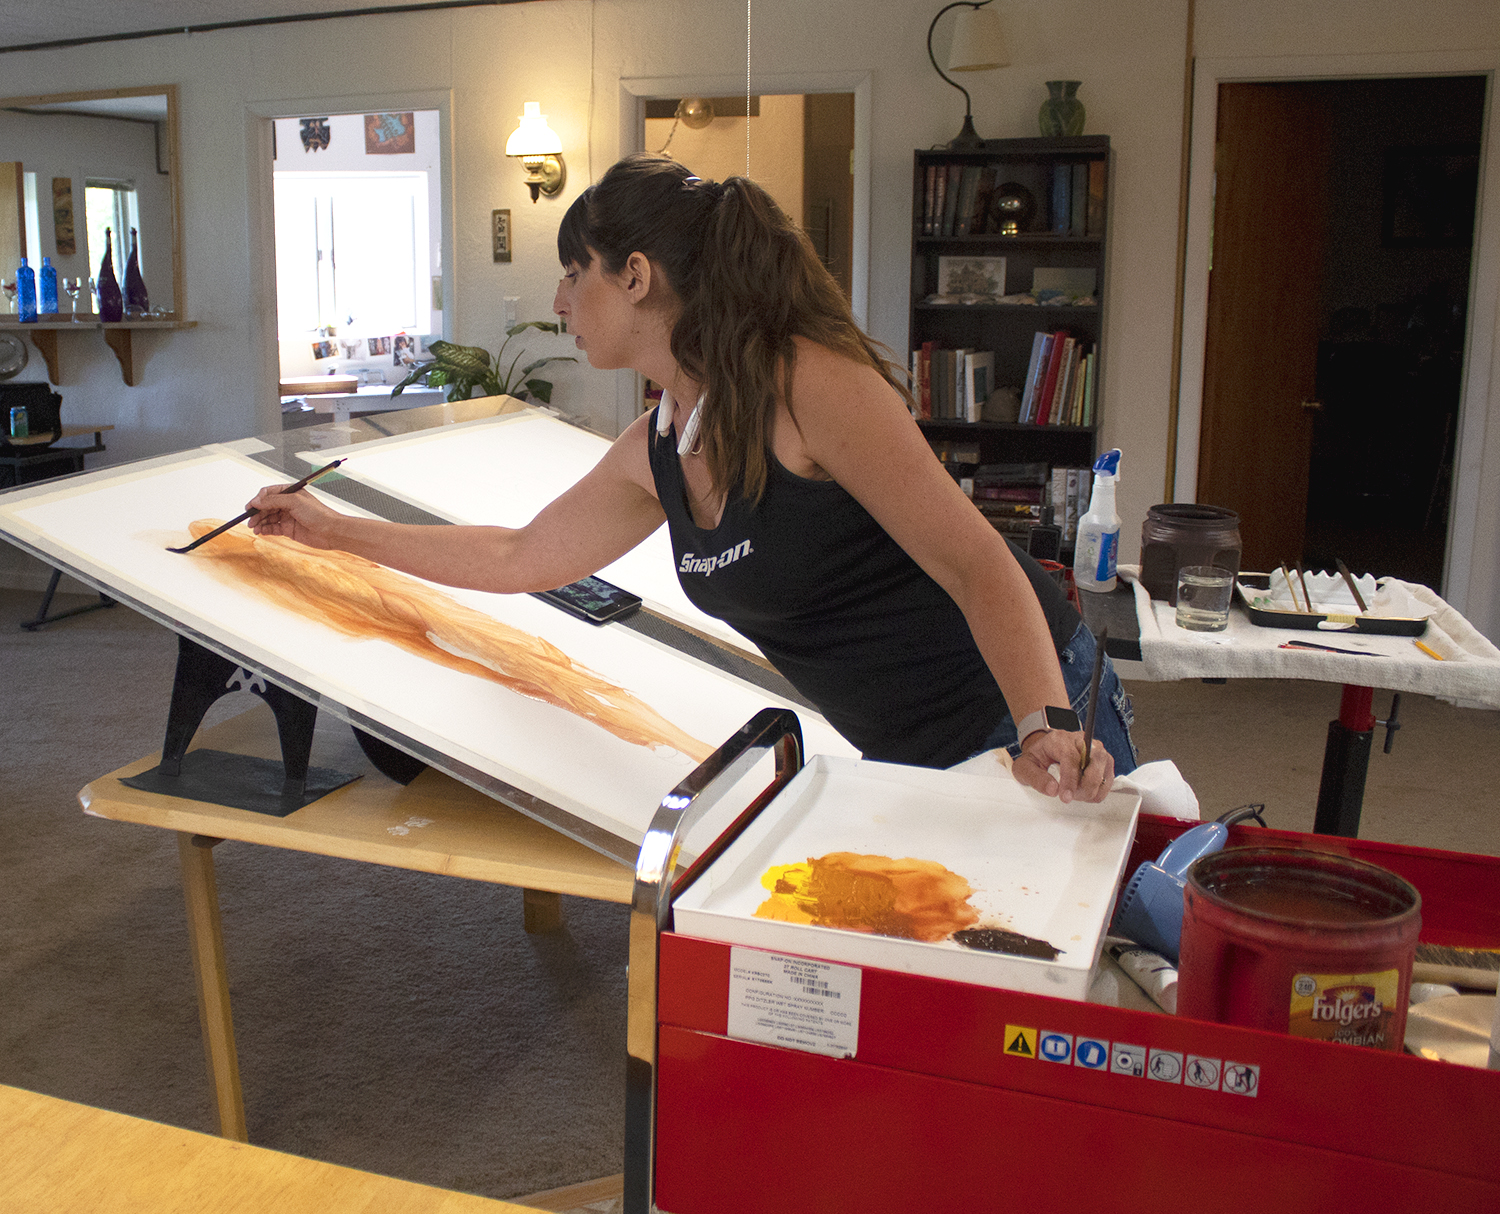 ABOUT MY WORK - ALL OF MY PAINTINGS ARE PAINTED ON ARCHES 140LB COLDPRESS WATERCOLOR PAPER. I THEN MOUNT THEM ON GESSOED, ACID FREE HARDBOARD AND VARNISH THEM WITH A UV RESISTANT VARNISH WHICH PROTECTS THEM AND ELIMINATES THE NEED FOR THEM TO BE MOUNTED BEHIND GLASS. BELOW YOU WILL FIND SOME SHORT VIDEOS OF PAINTINGS IN PROGRESS AND MY MOUNTING AND VARNISHING PROCESS.FOR MORE INFORMATION OR IF YOU HAVE ANY QUESTIONS, PLEASE FEEL FREE TO CONTACT ME, I WOULD BE MORE THAN HAPPY TO TALK TO YOU ABOUT MY WORK AND ANSWER ANY QUESTIONS YOU MAY HAVE. ENJOY!